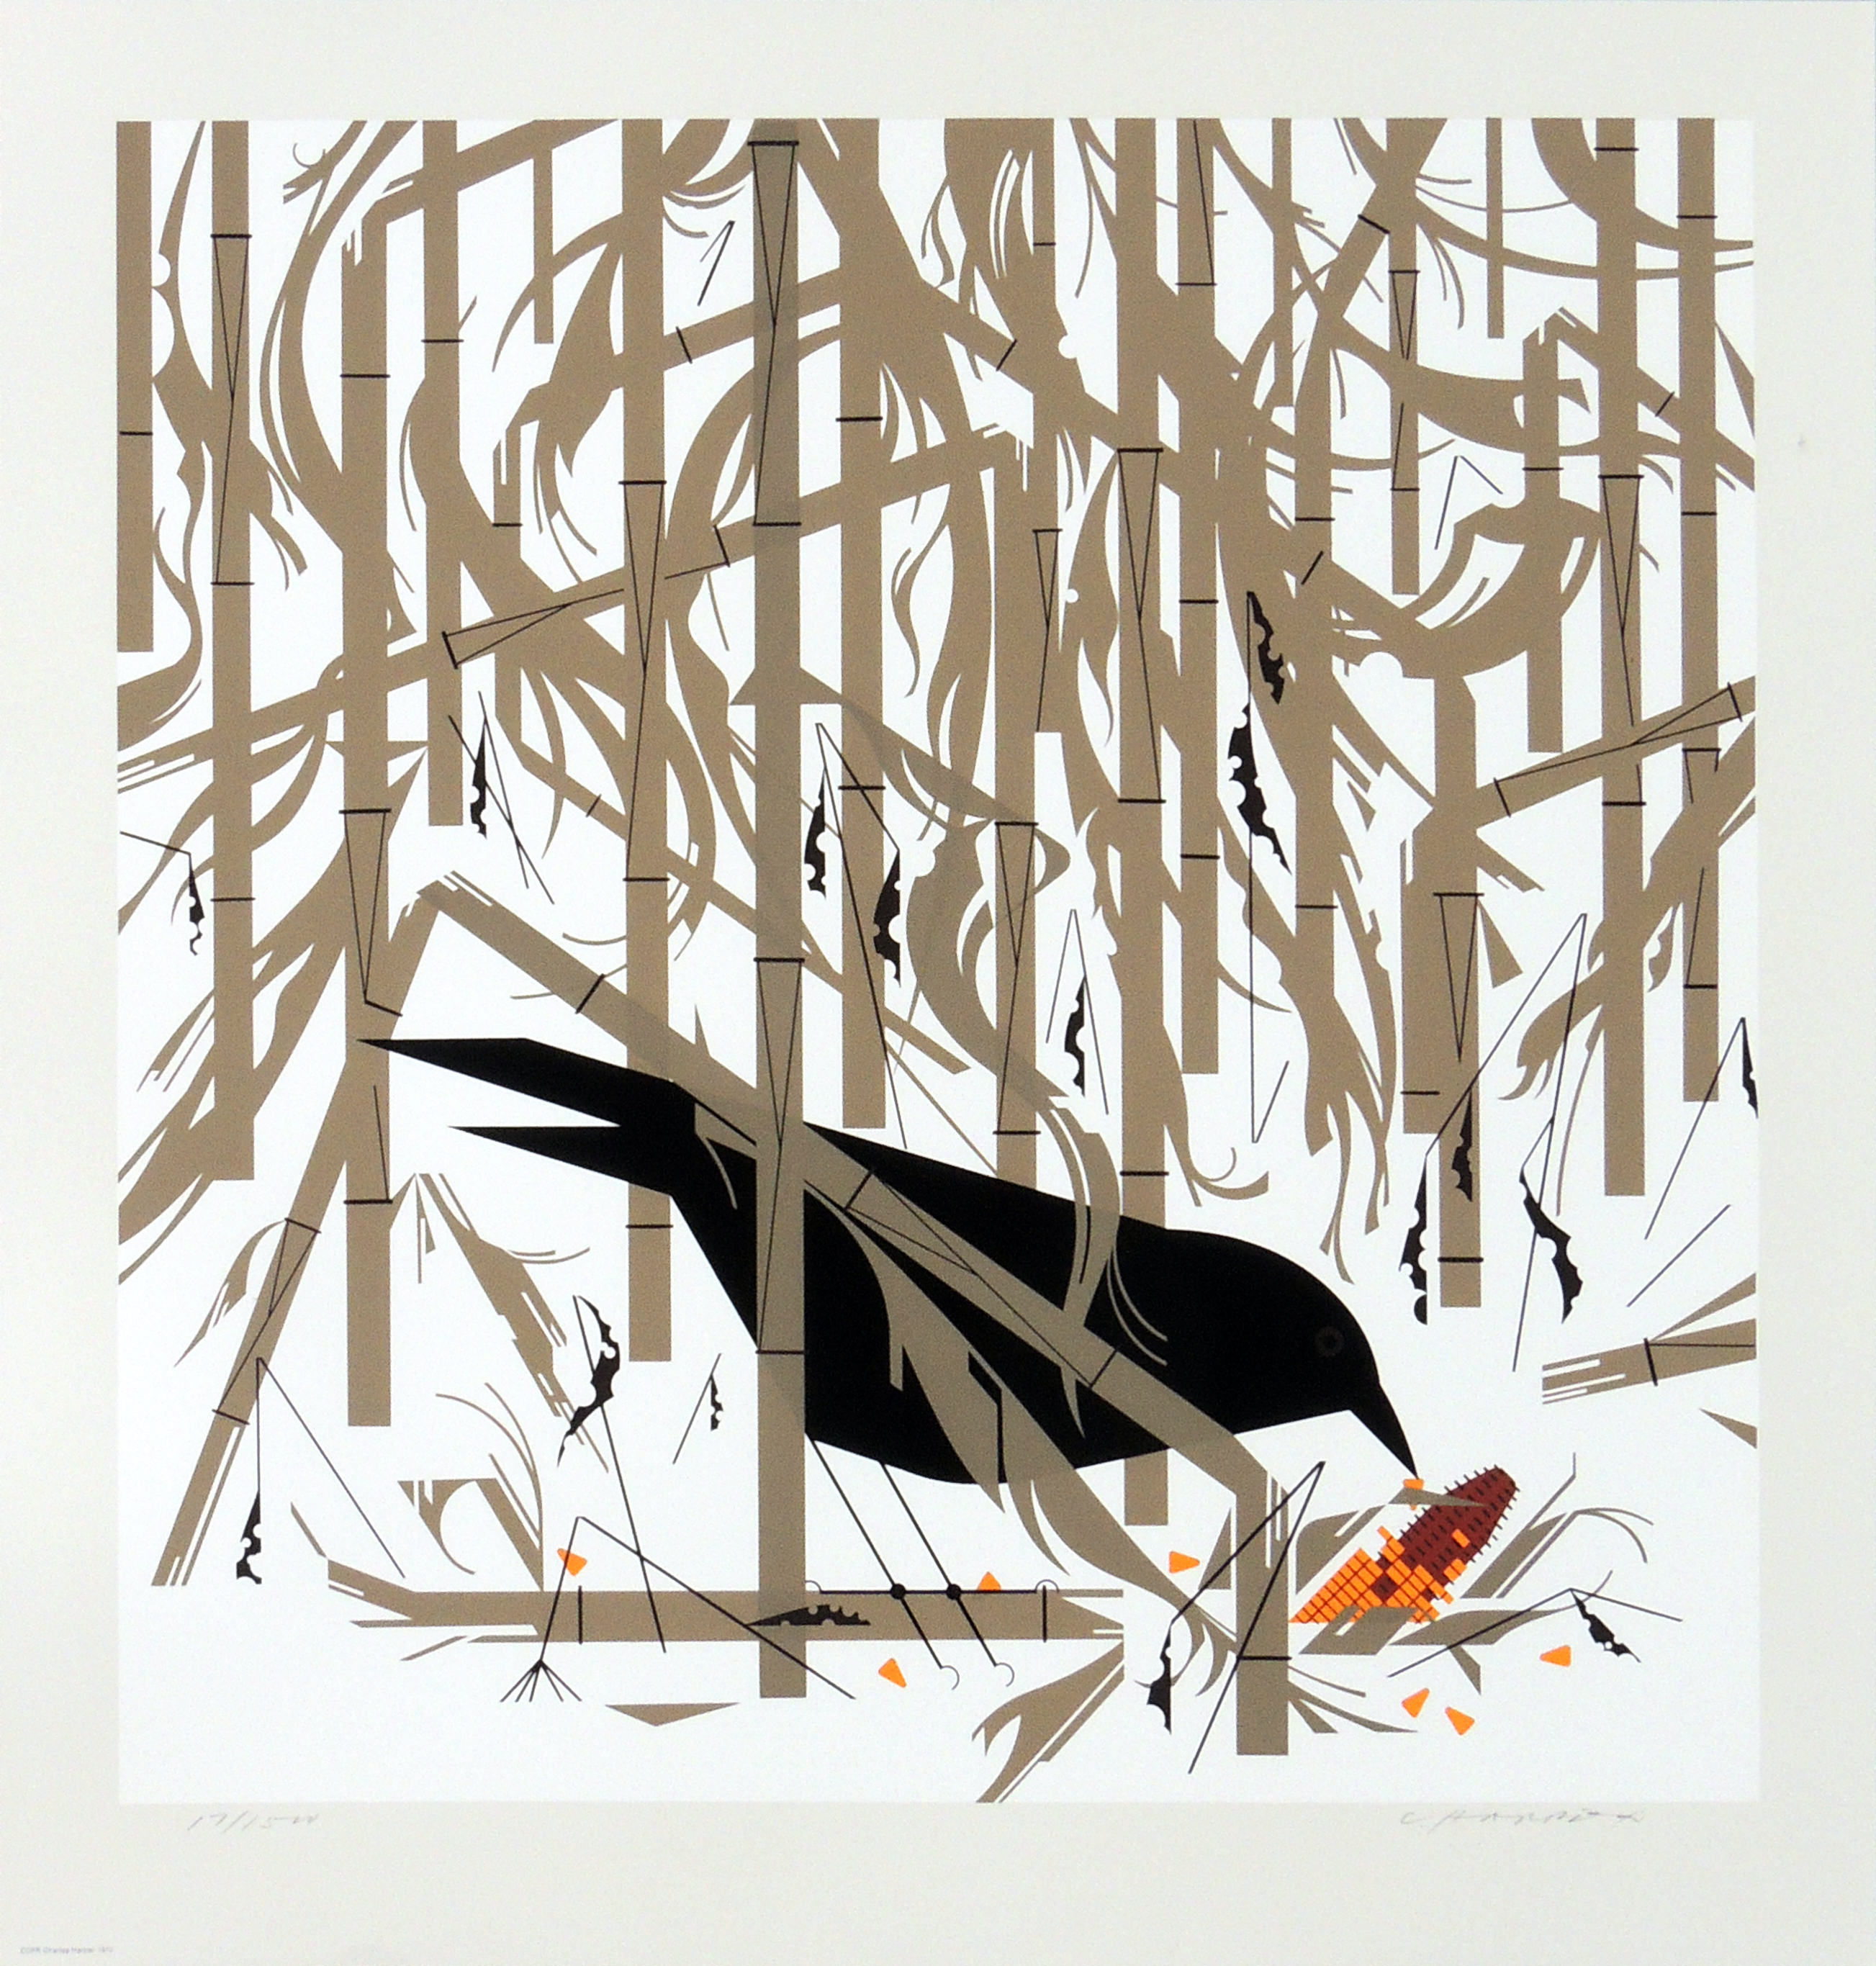 Charley Harper | CROW IN THE SNOW | serigraph on paper | 14-1/2 x 20"